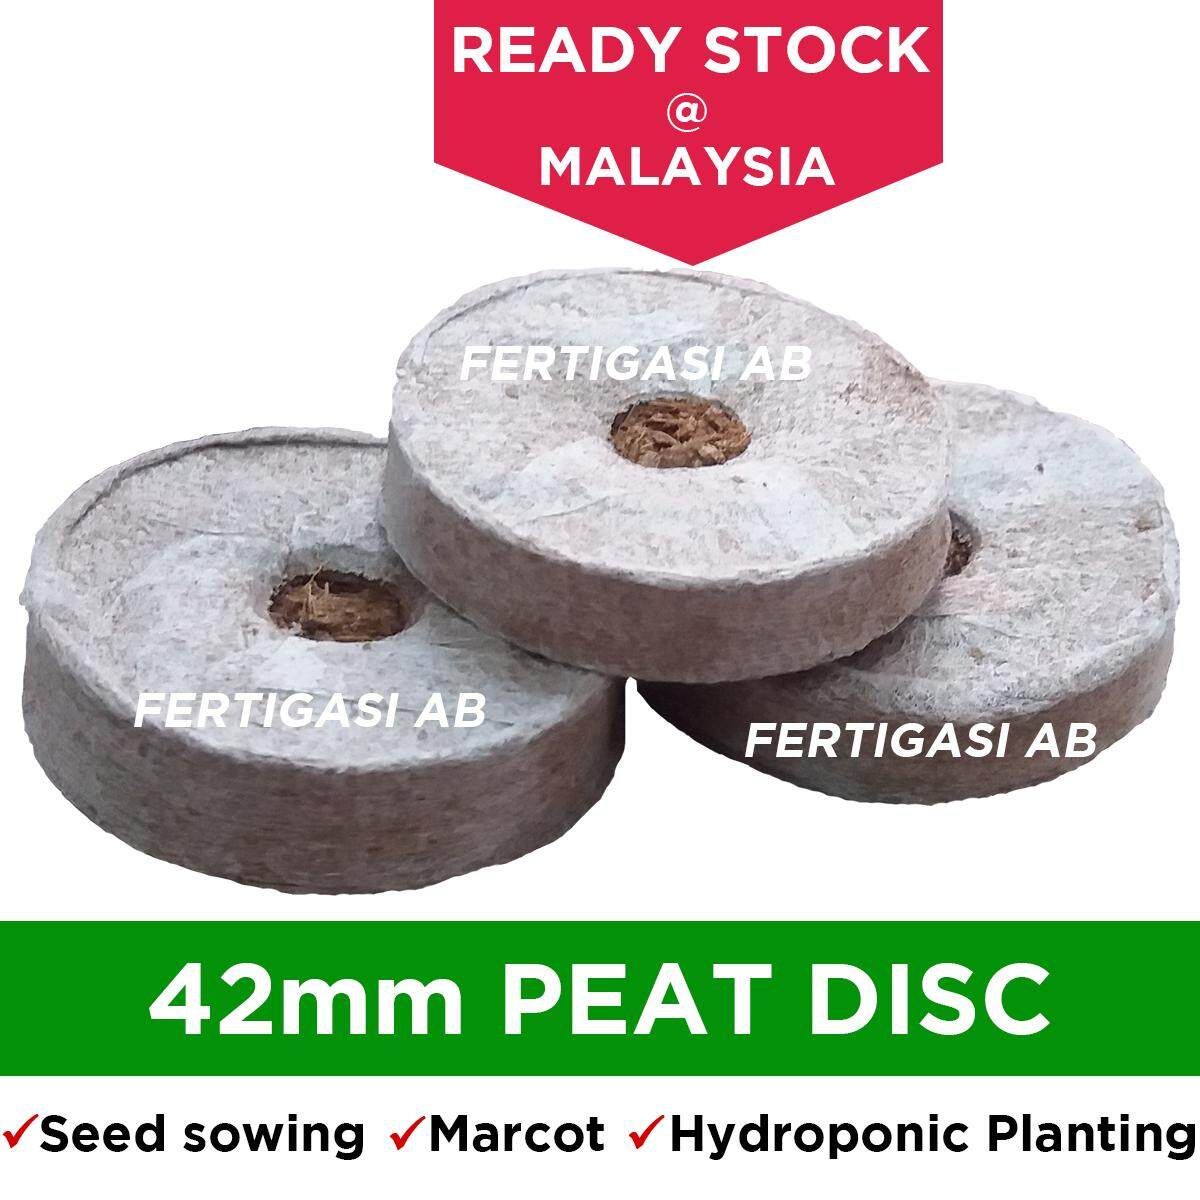 10pcs 42mm Peat Disc Pellet Jiffy pallet Hydroponic Tut seed germination seedling soil Starting Plugs Block Professional Easy To Use